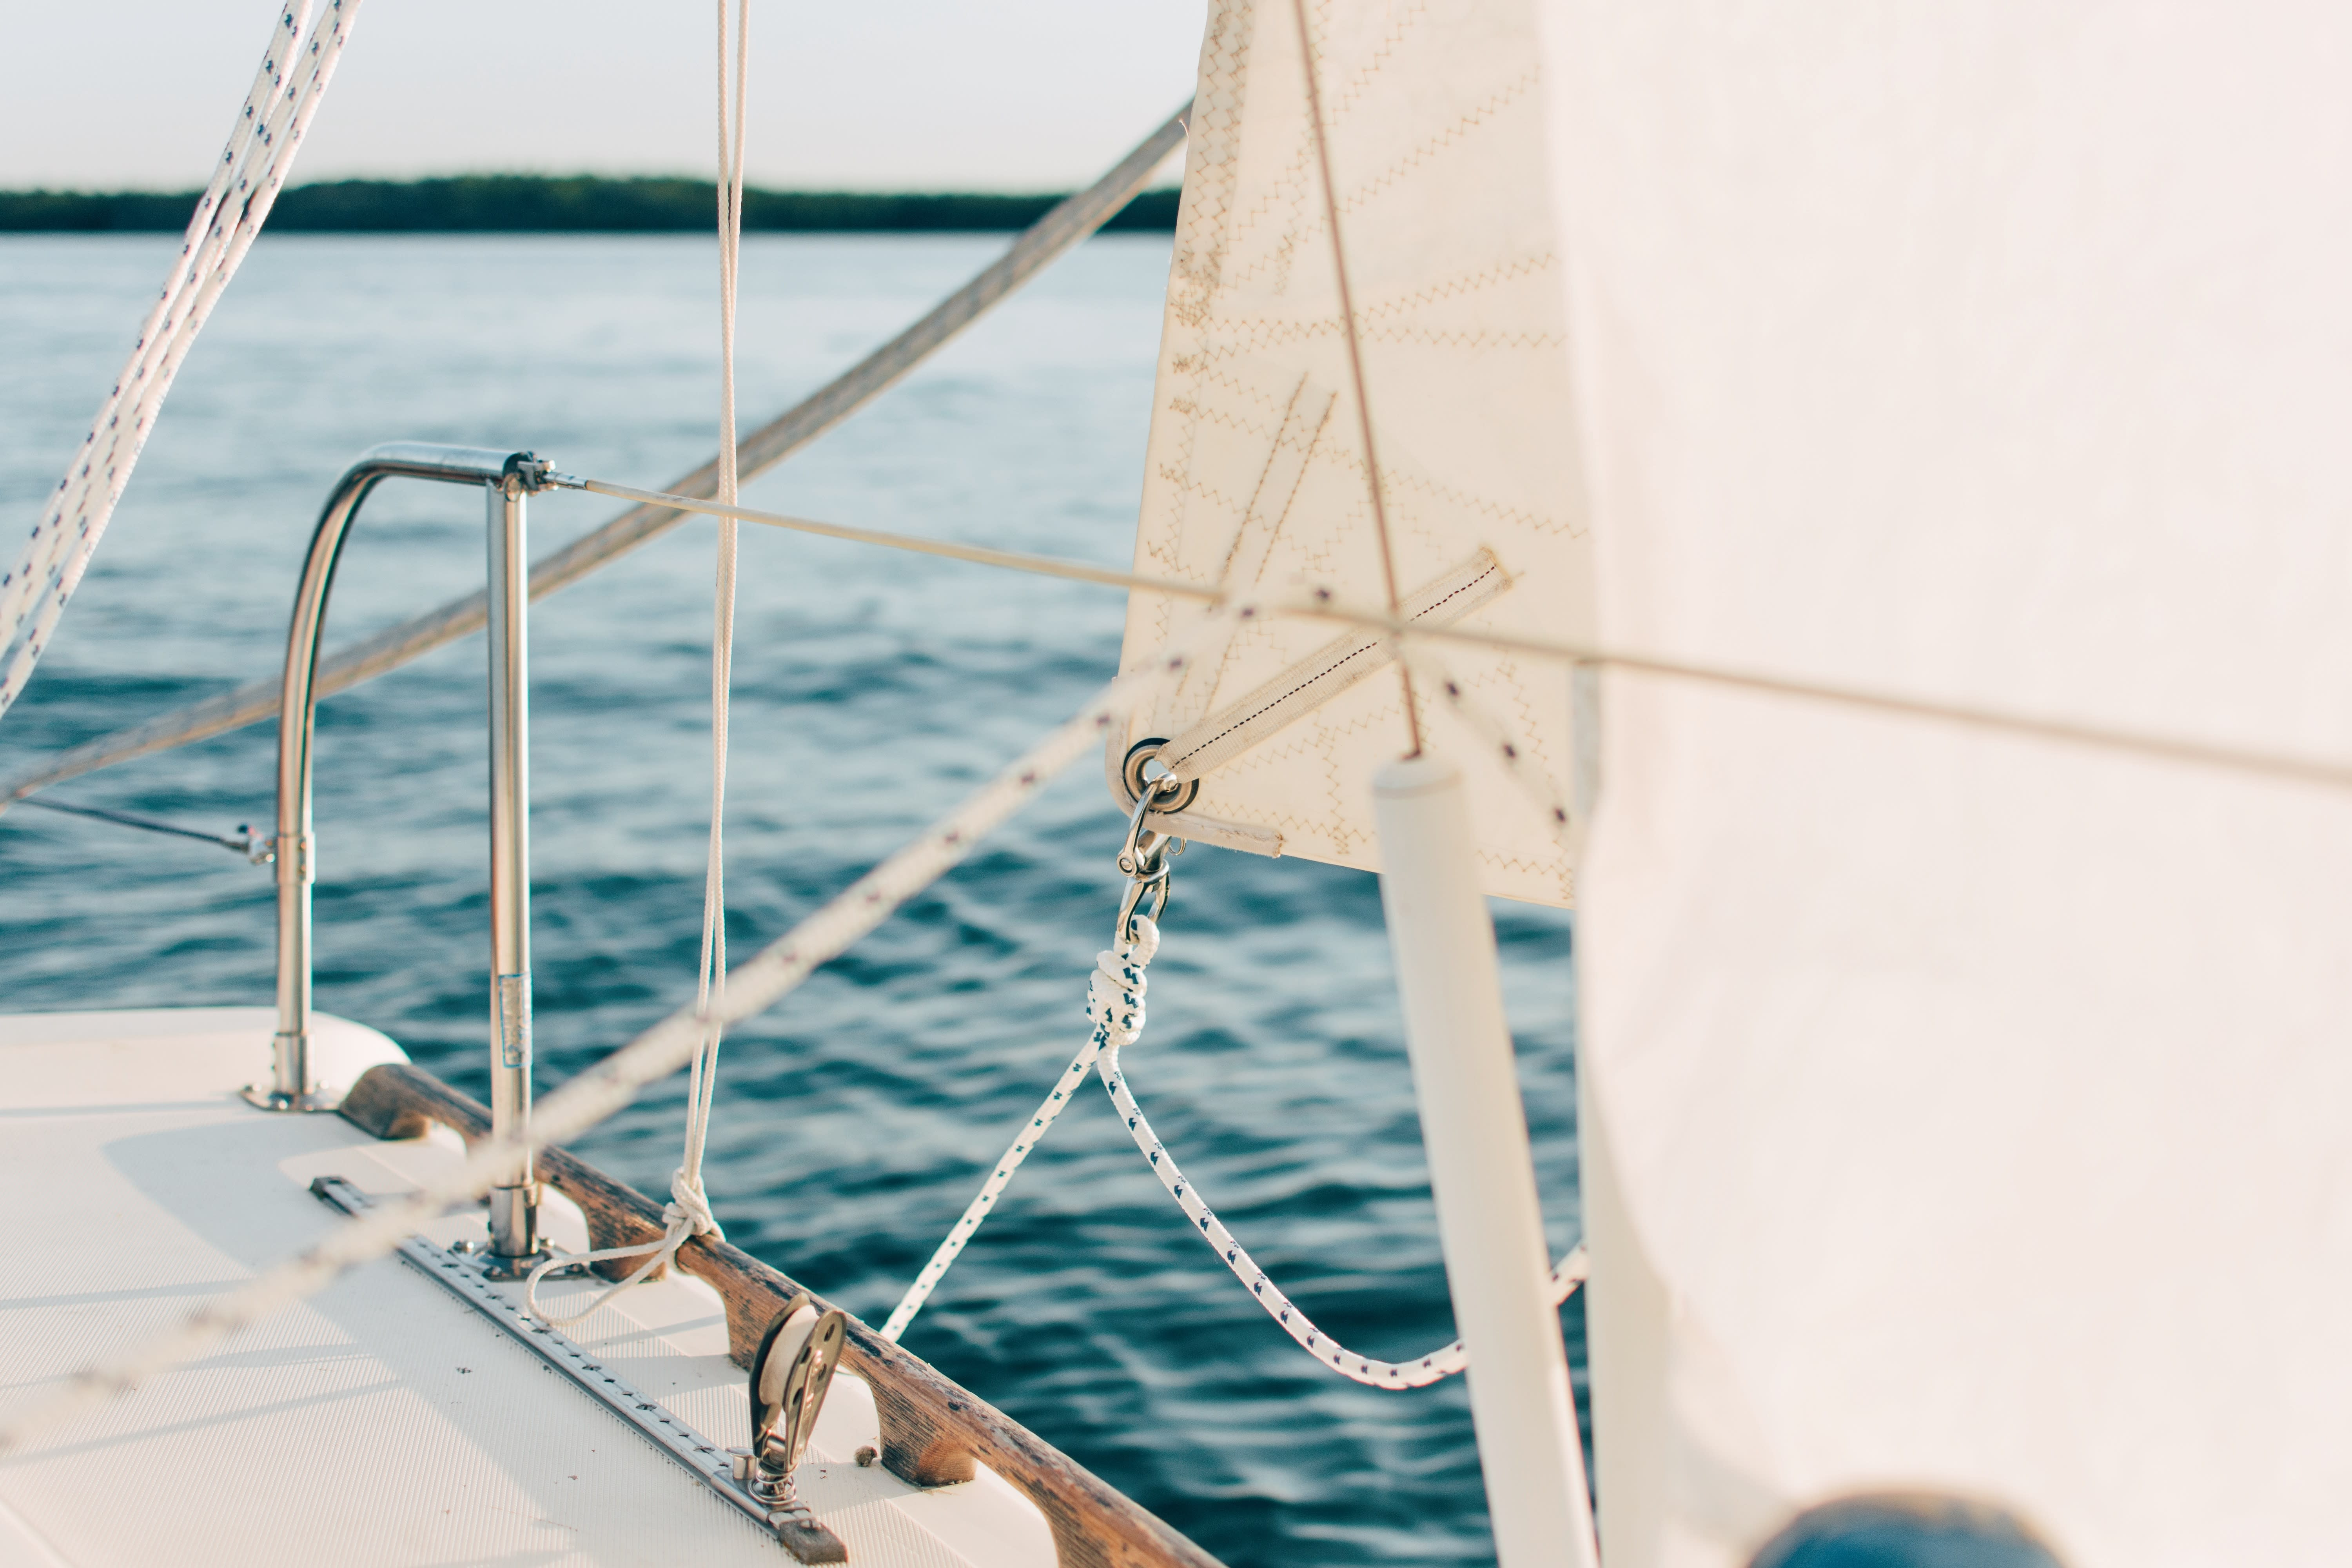 Sailing the high seas: learning the sailing basics on a sailboat